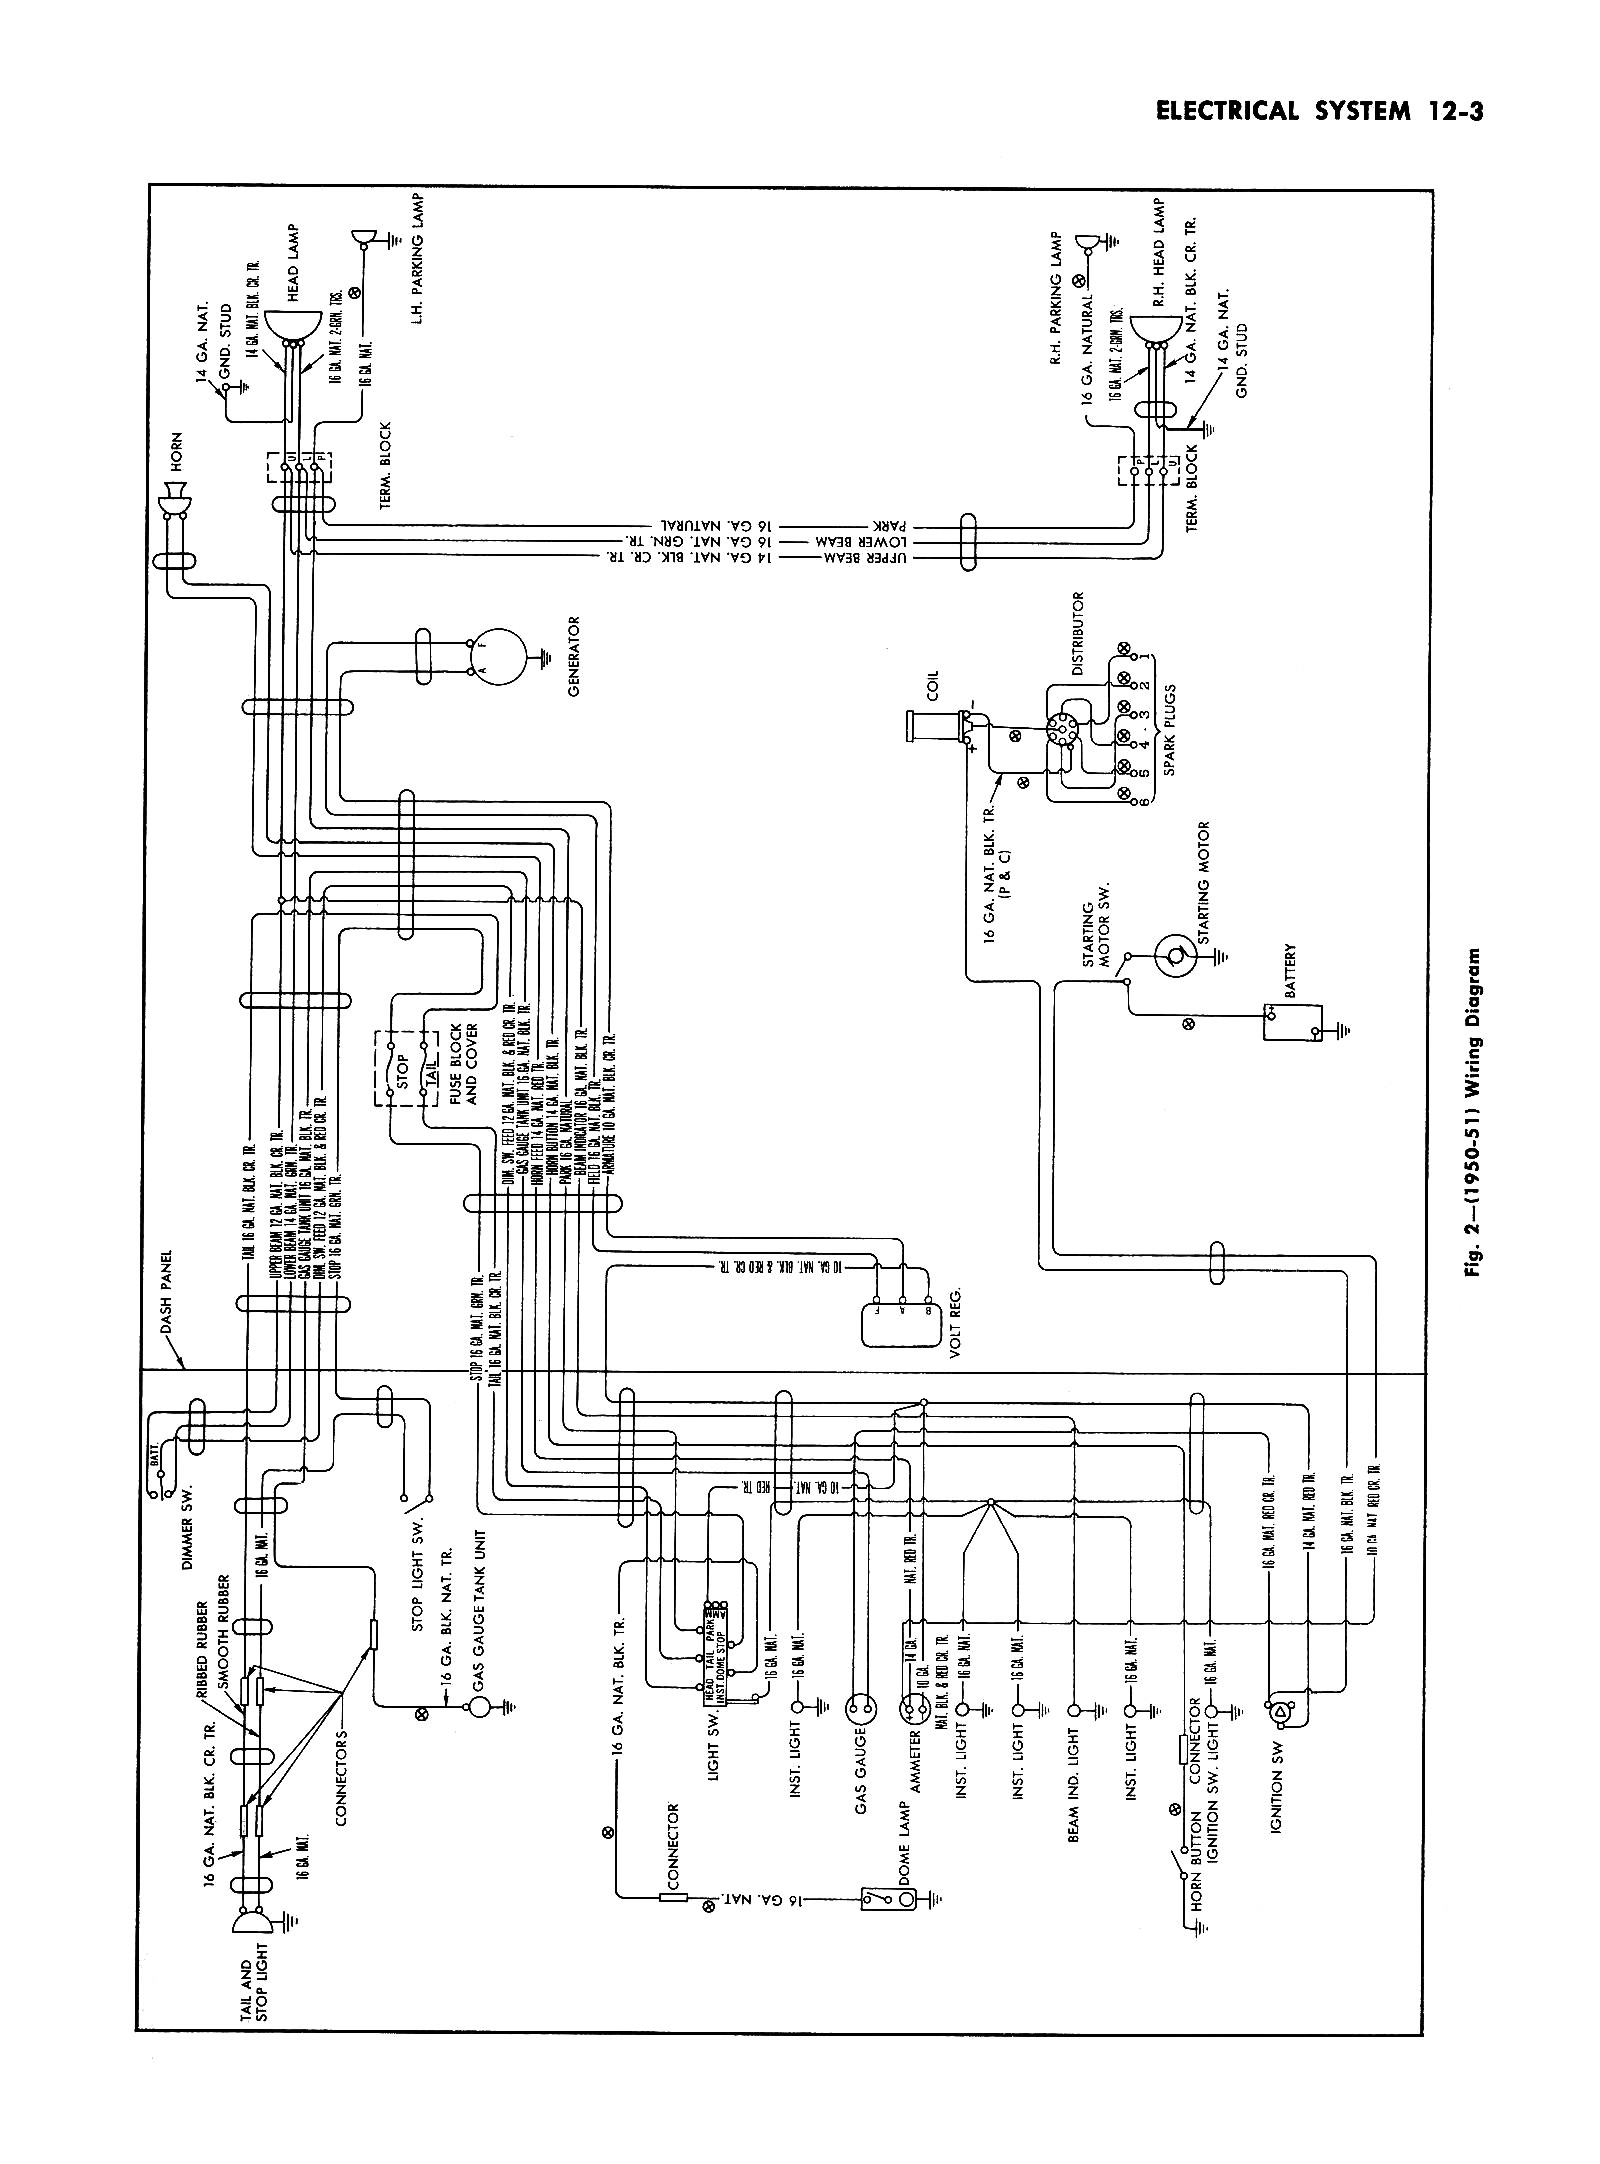 hight resolution of 1959 chevy apache wiring diagrams wiring diagram database 1959 chevrolet truck wiring diagram 1959 chevy wiring diagram